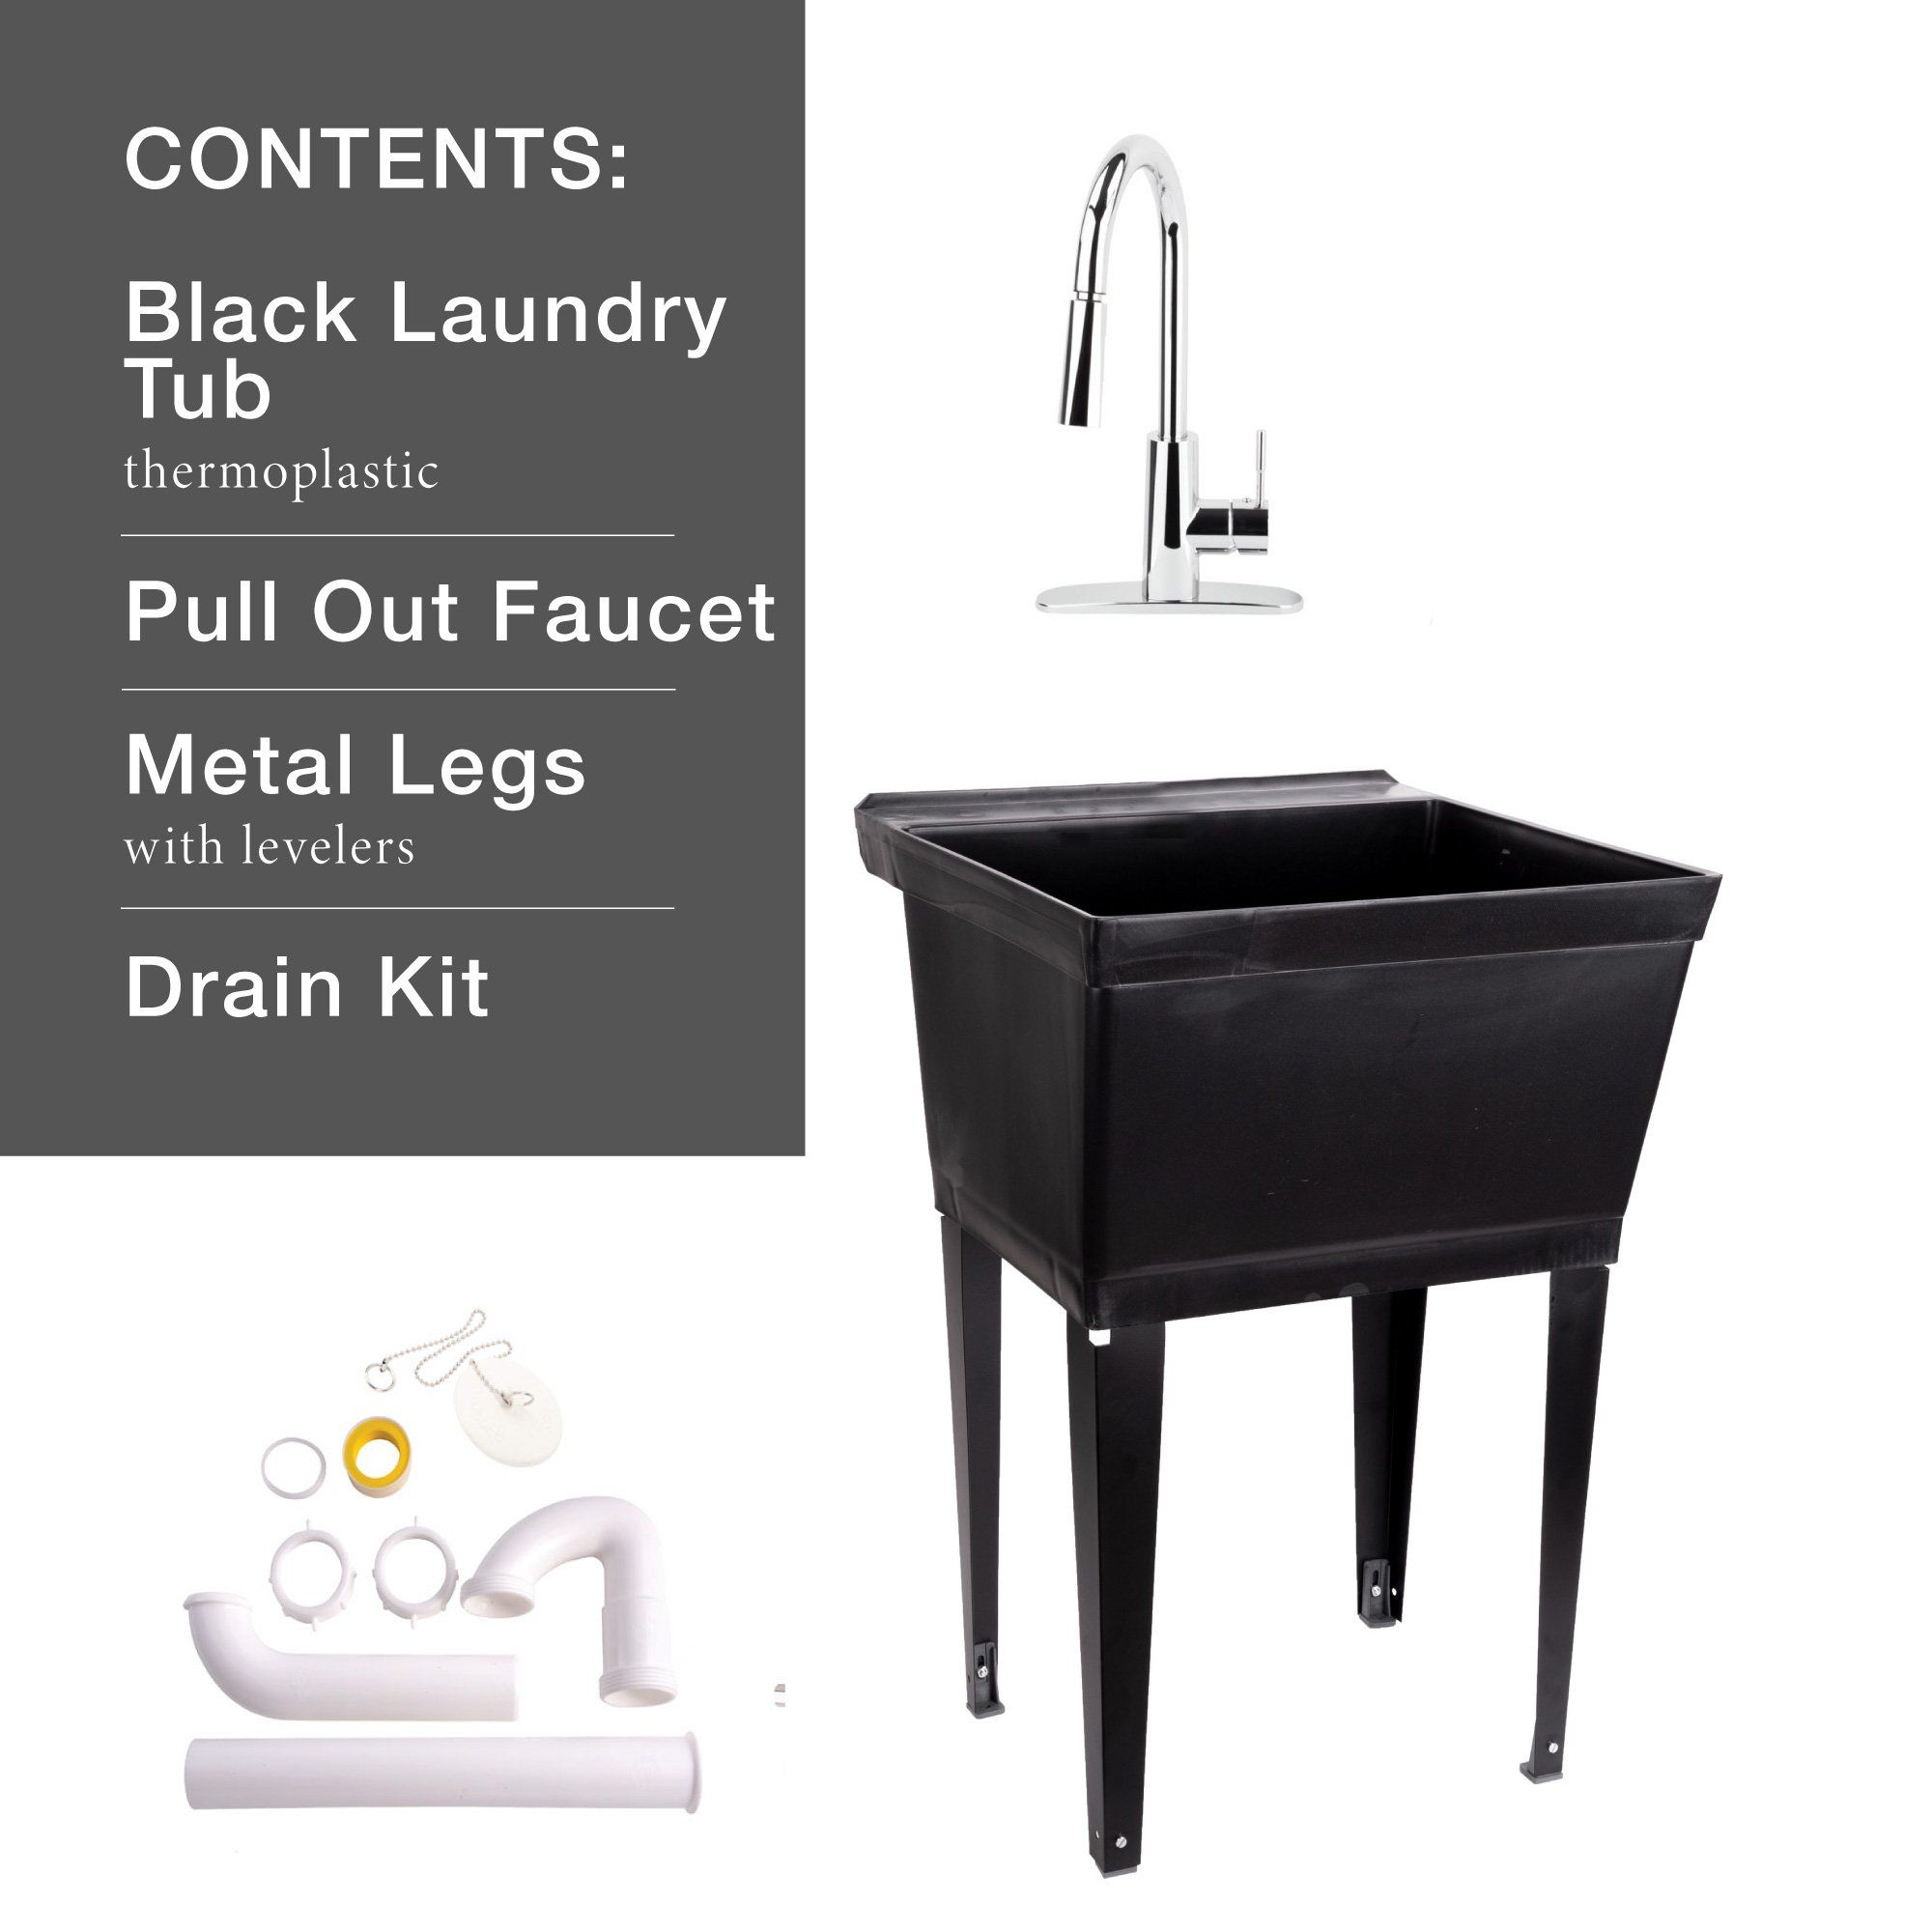 Black 19 Gallon Utility Sink Laundry Tub With High Arc Pull Down